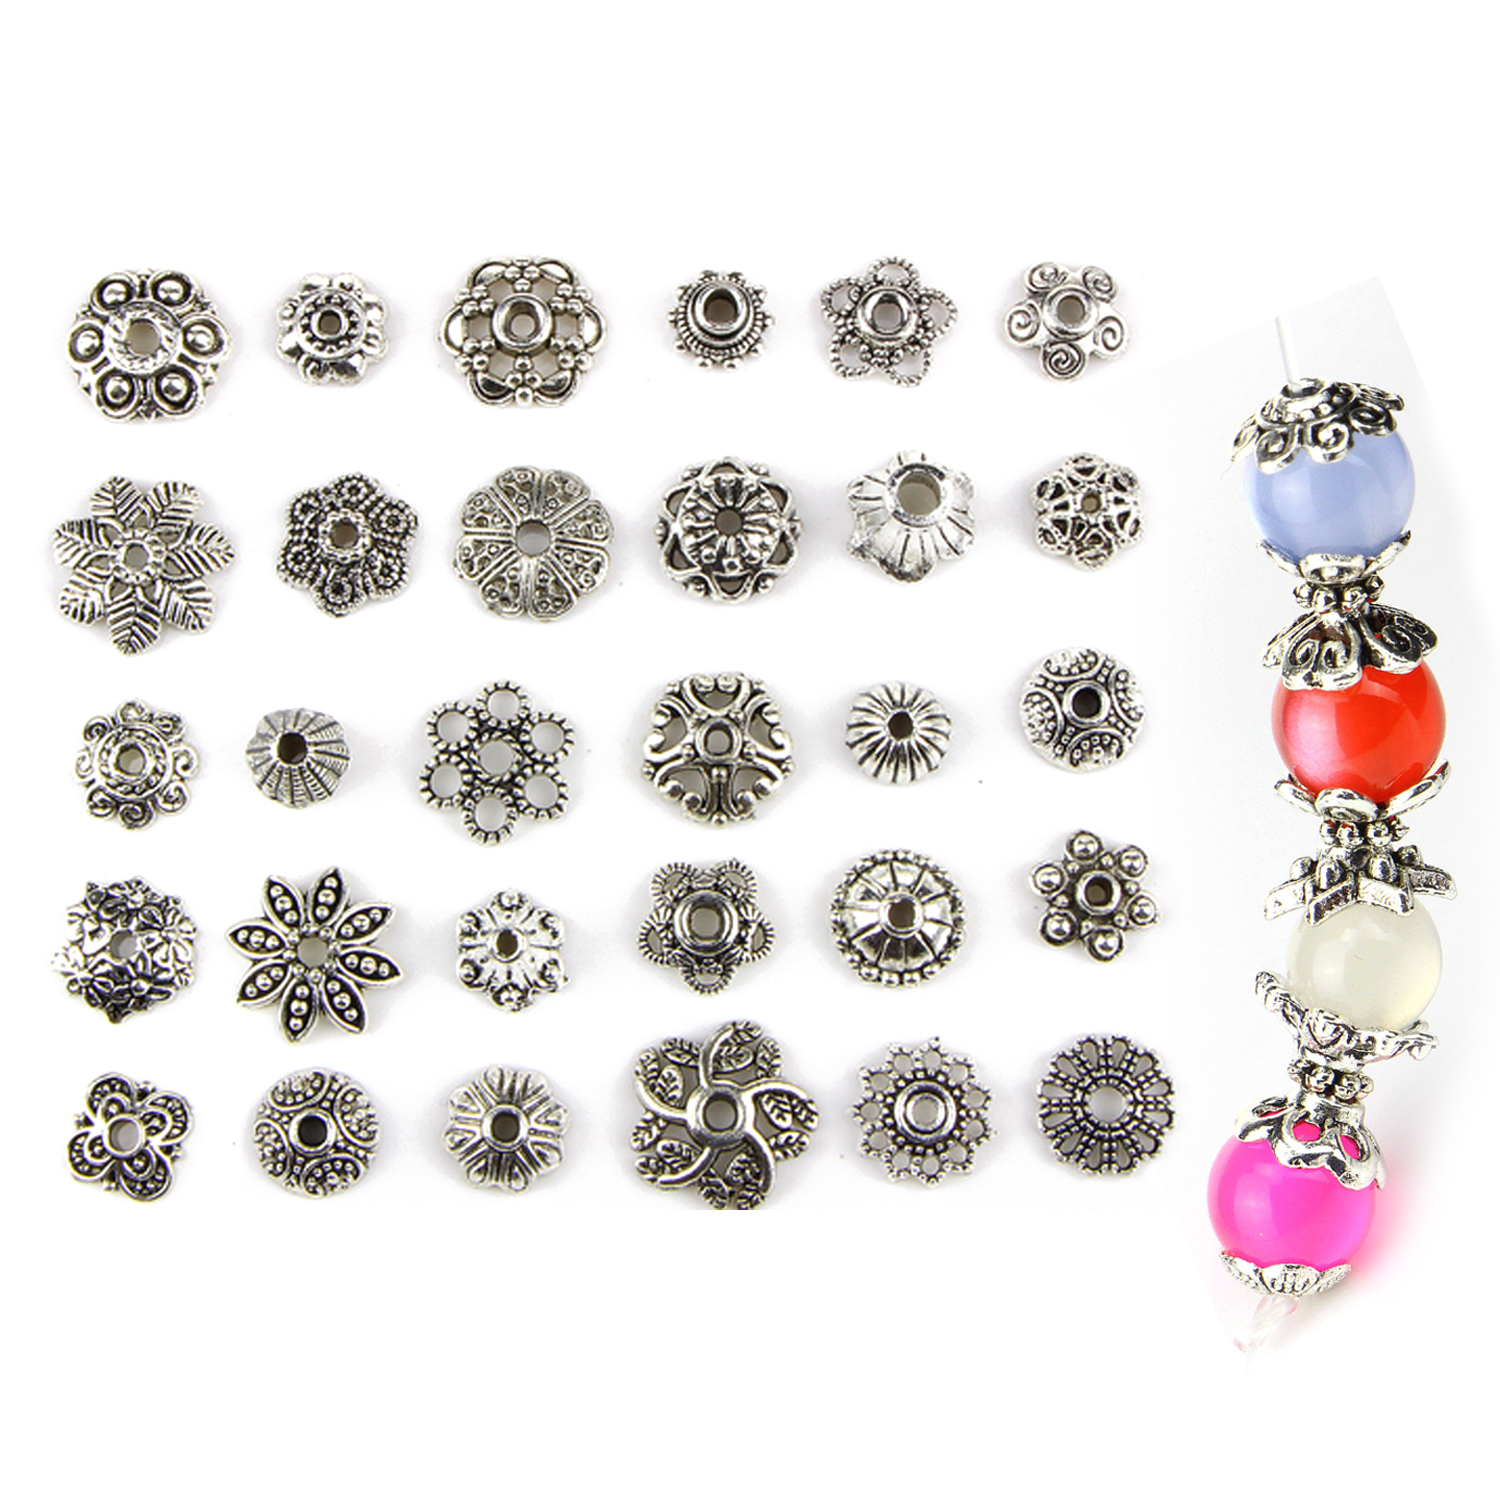 150PCS Assorted Style Alloy Spacer Beads Toys Gifts For DIY Bracelet Necklace Craft Making Accessories